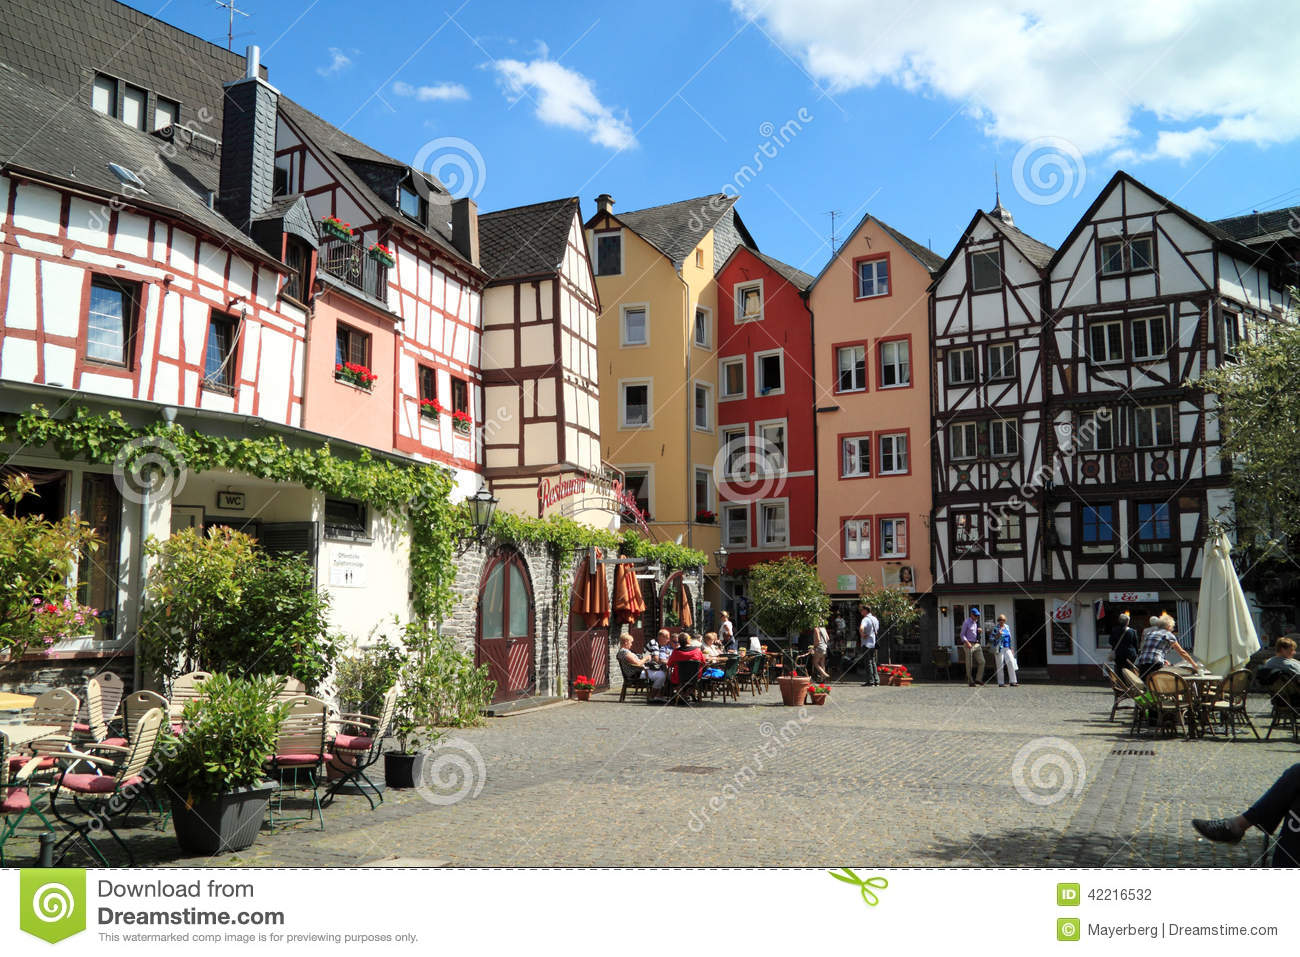 historische stadt bernkastel kues in deutschland redaktionelles stockfotografie bild 42216532. Black Bedroom Furniture Sets. Home Design Ideas